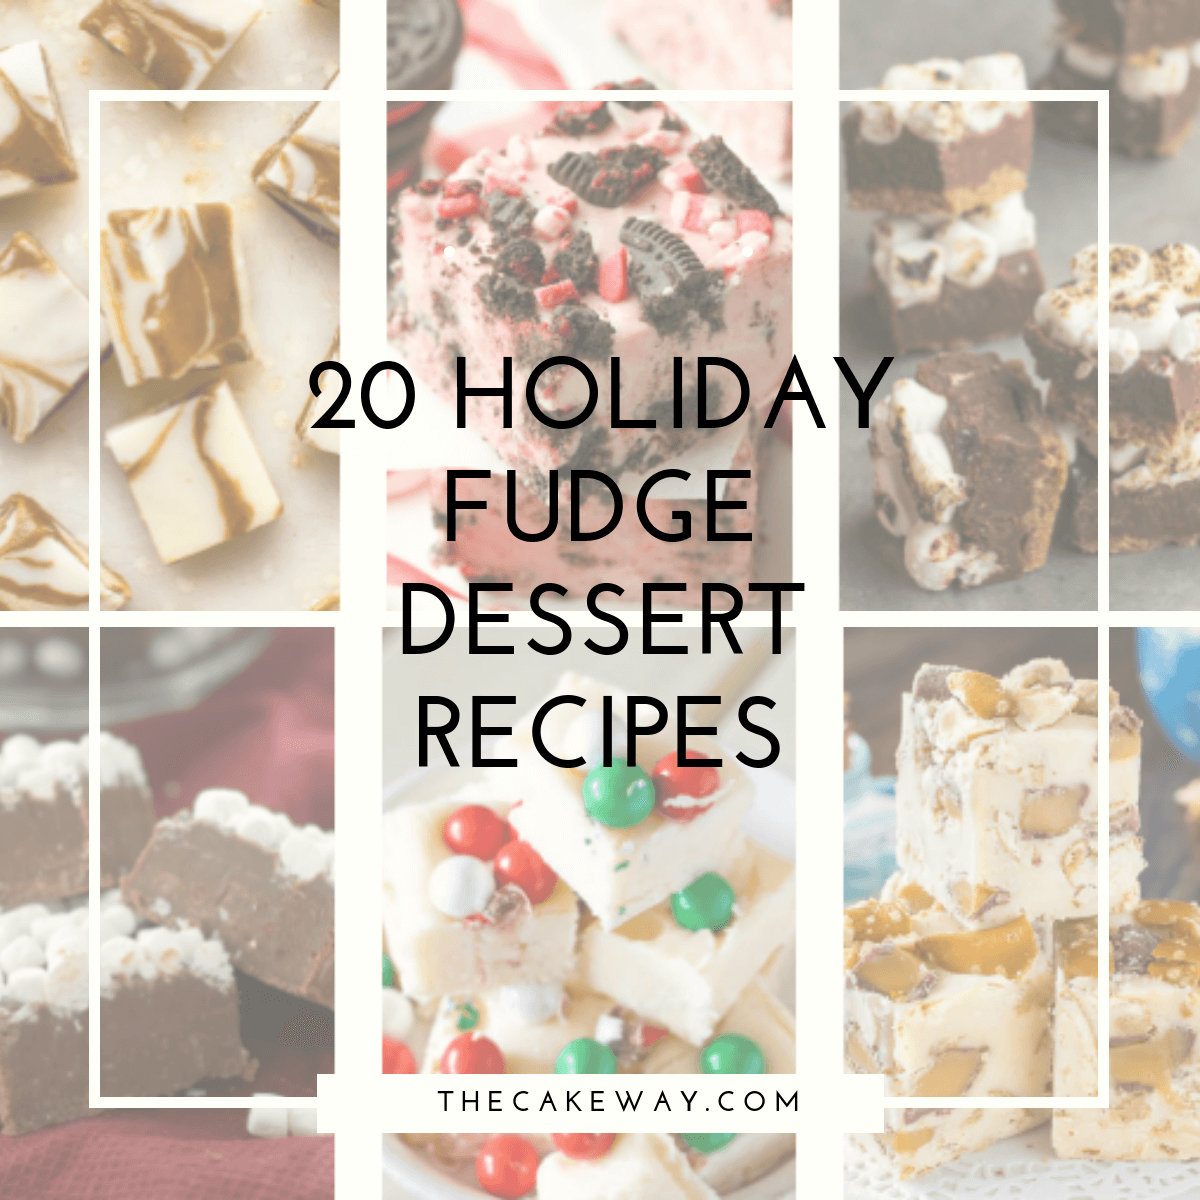 20 Holiday Fudge Dessert Recipes